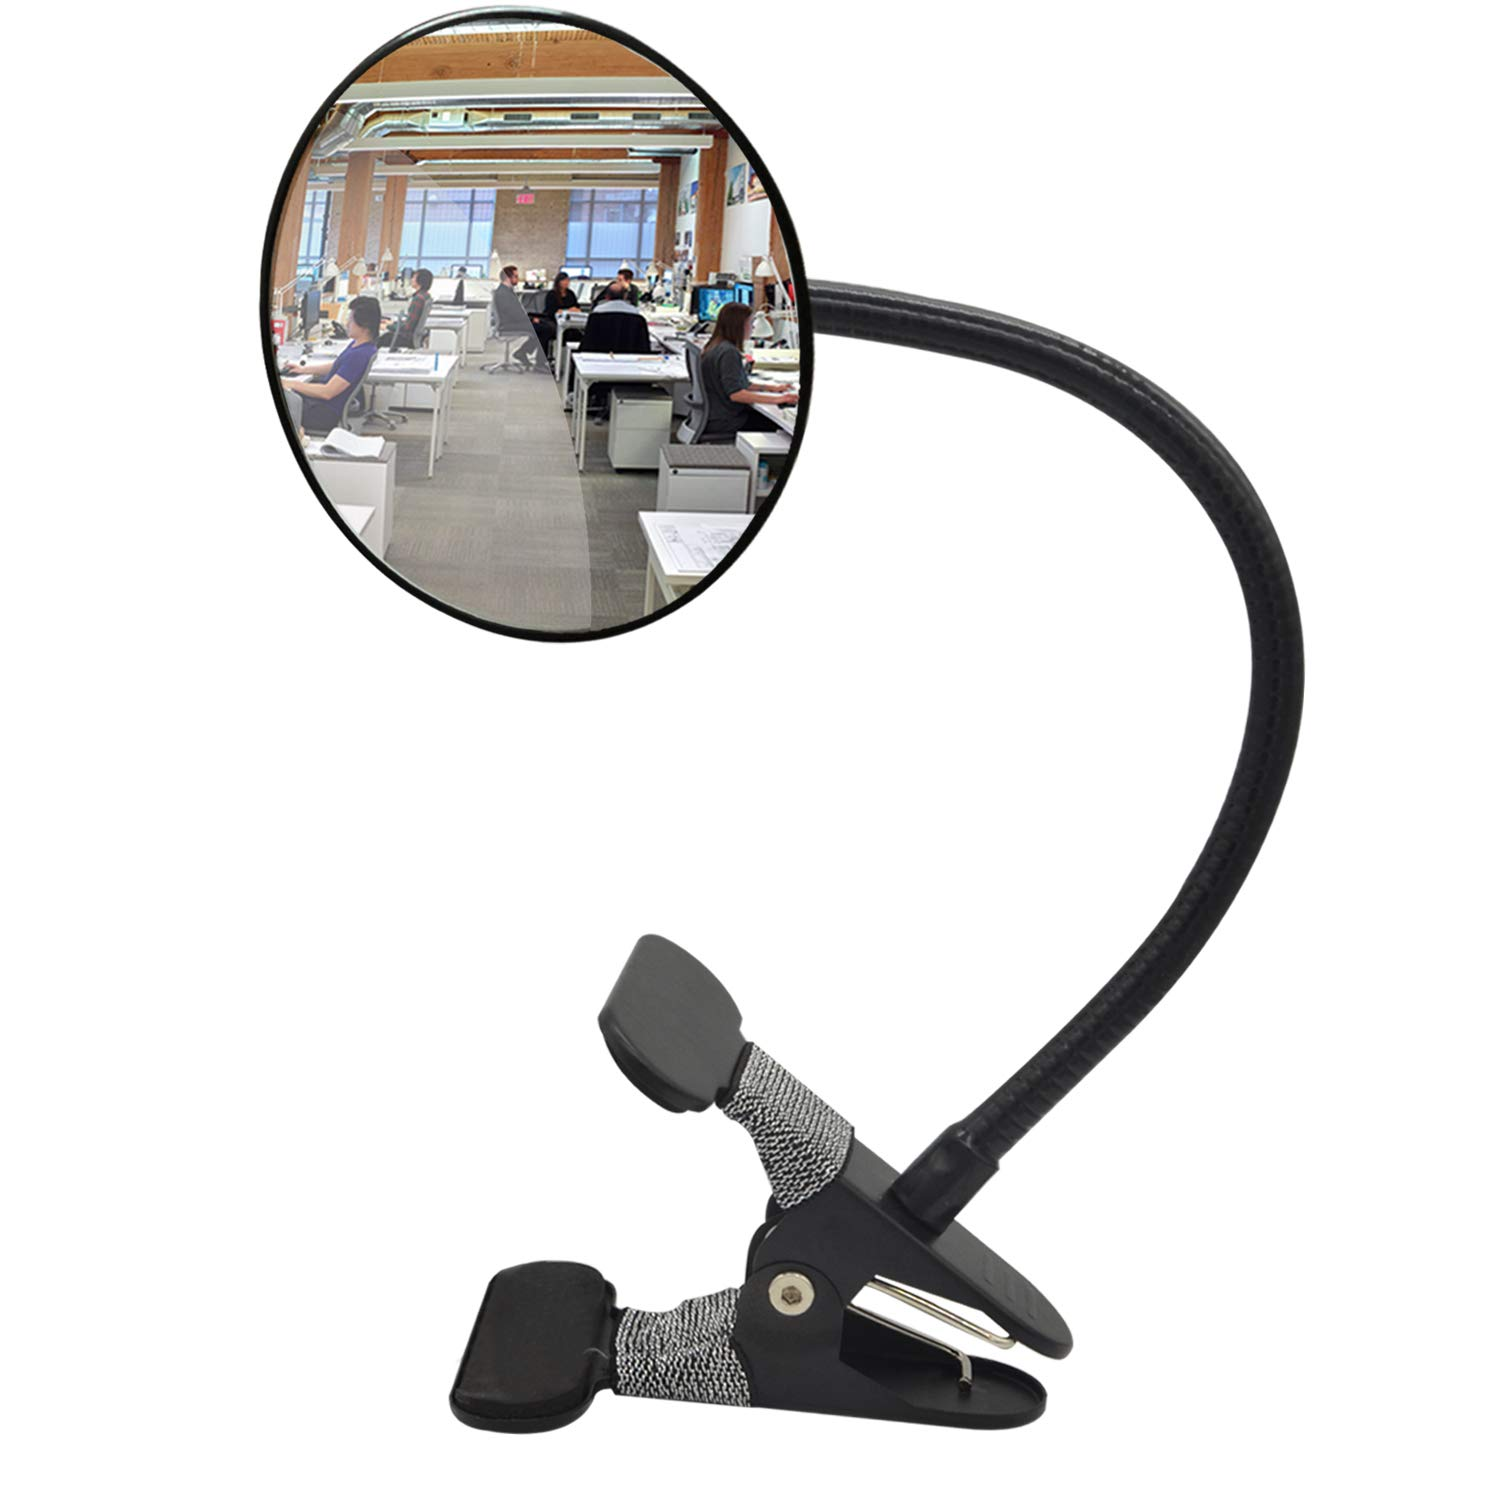 """Ampper Acrylic Clip On Rear View Cubicle Mirror, Flexible Convex Security Mirror for Personal Safety Desk Rearview Monitors or Anywhere (3.75"""", Round) 61mGw2RudjL"""